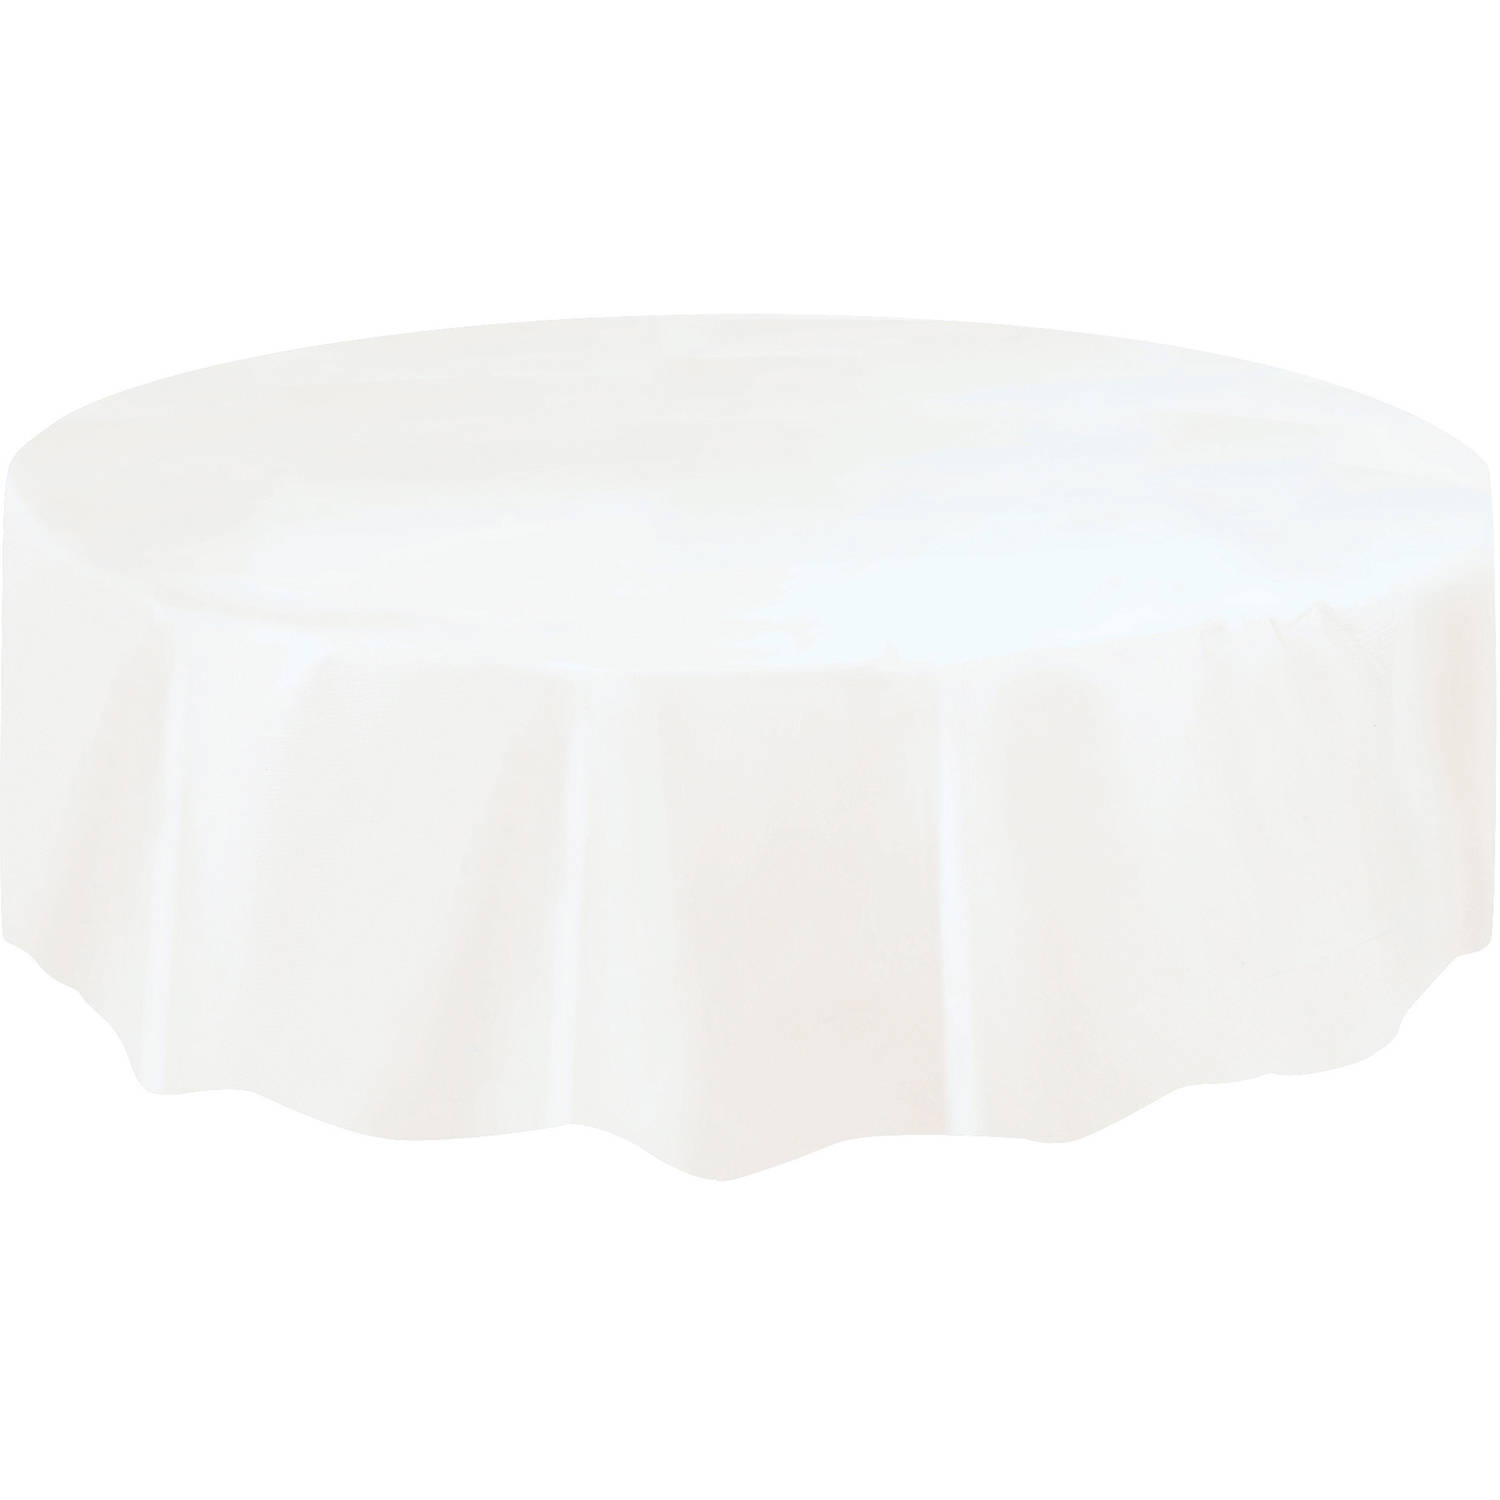 chair covers oriental trading united stool plastic table cloths as ceiling decorations rainbow party